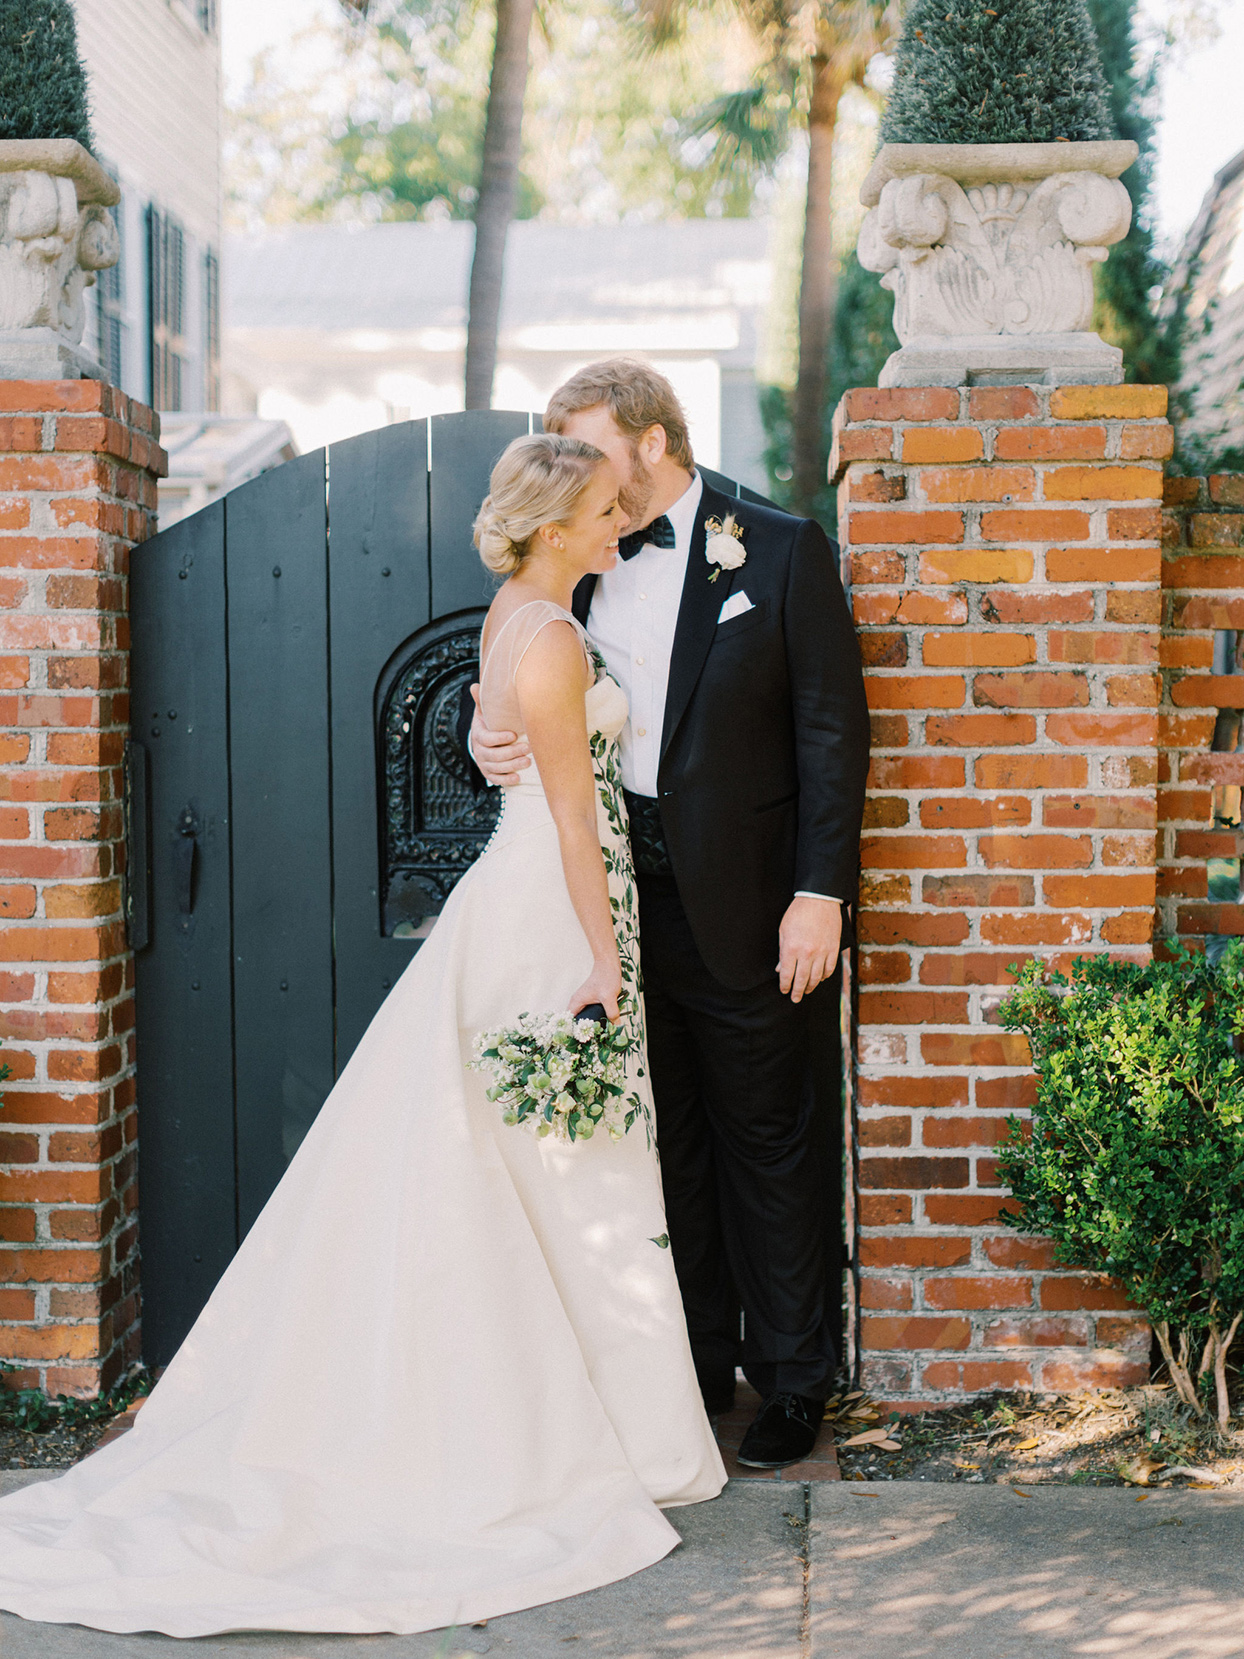 megan parking wedding first look in front of brick wall and black gate